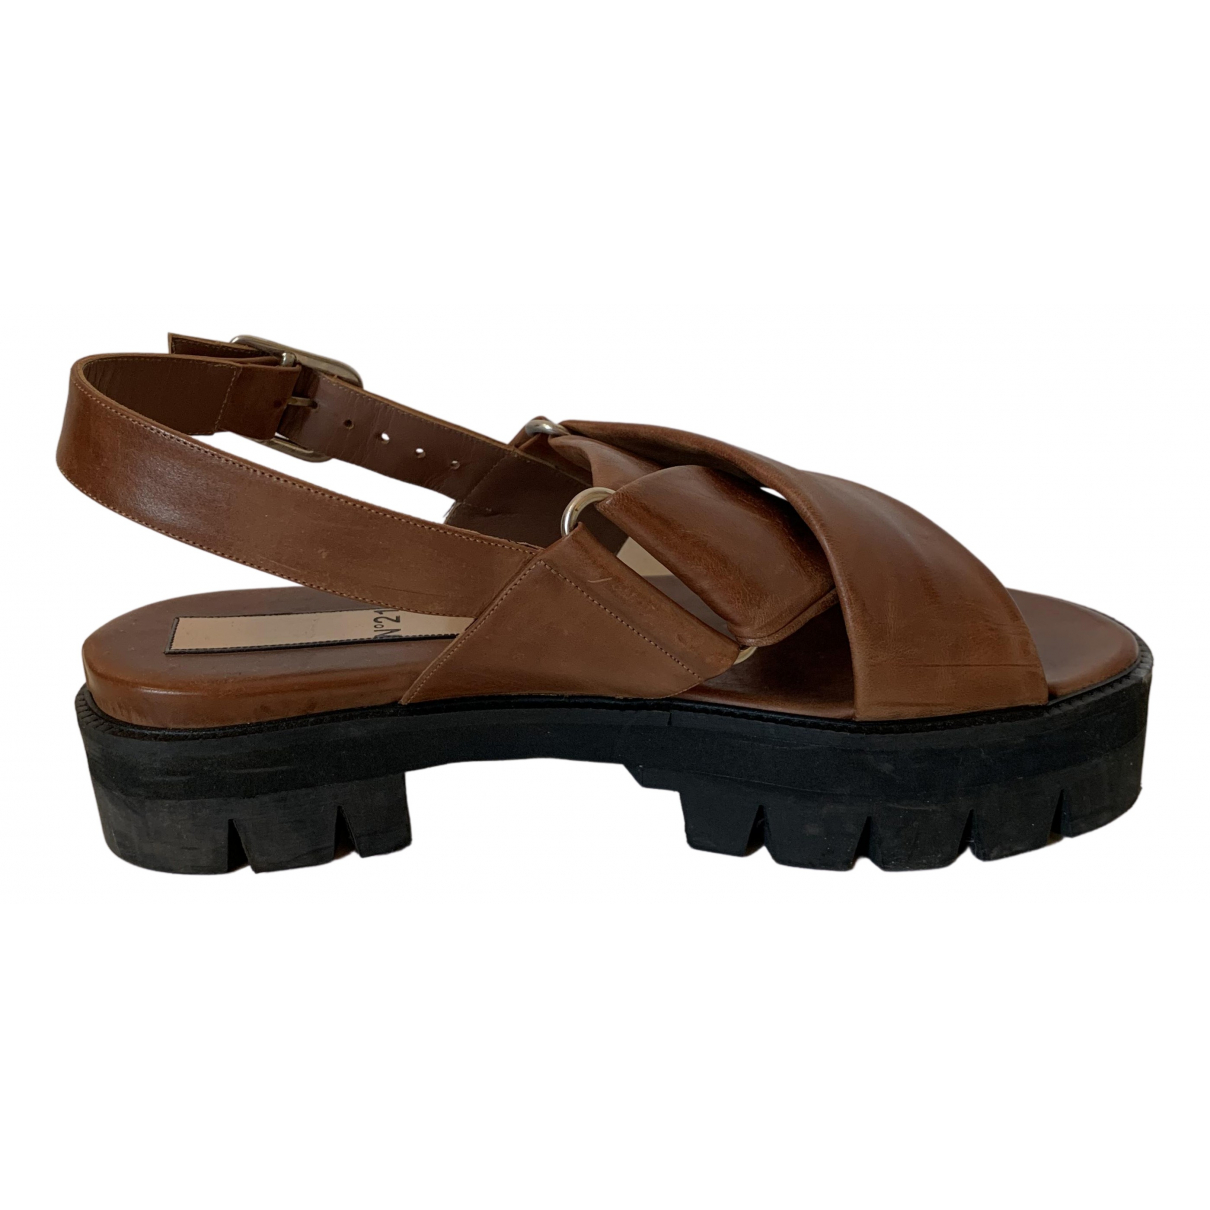 N°21 N Brown Leather Sandals for Women 38 EU